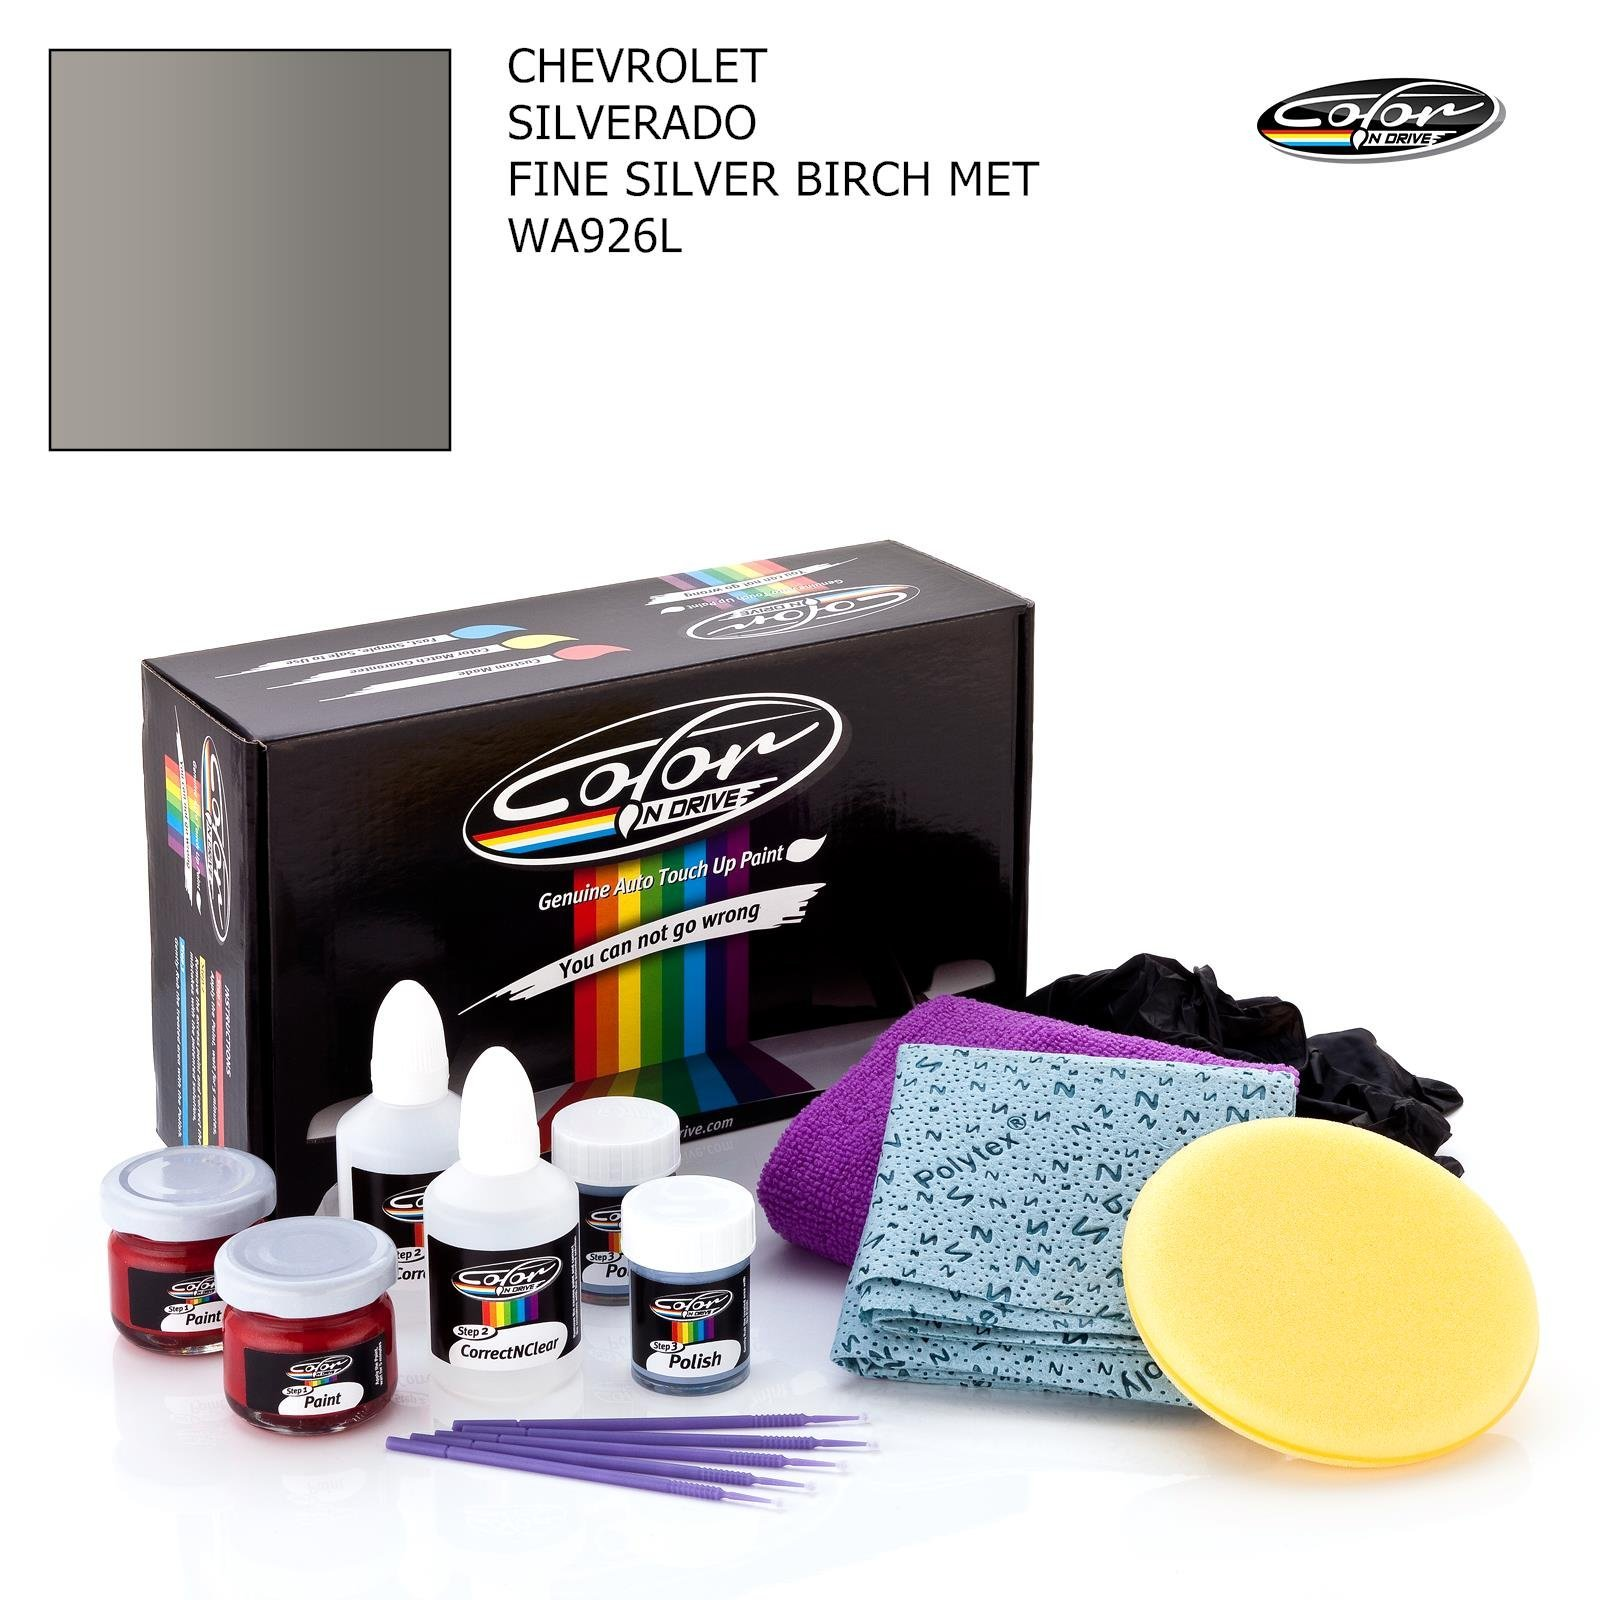 CHEVROLET SILVERADO / FINE SILVER BIRCH MET - WA926L / COLOR N DRIVE TOUCH UP PAINT SYSTEM FOR PAINT CHIPS AND SCRATCHES / PRO PACK